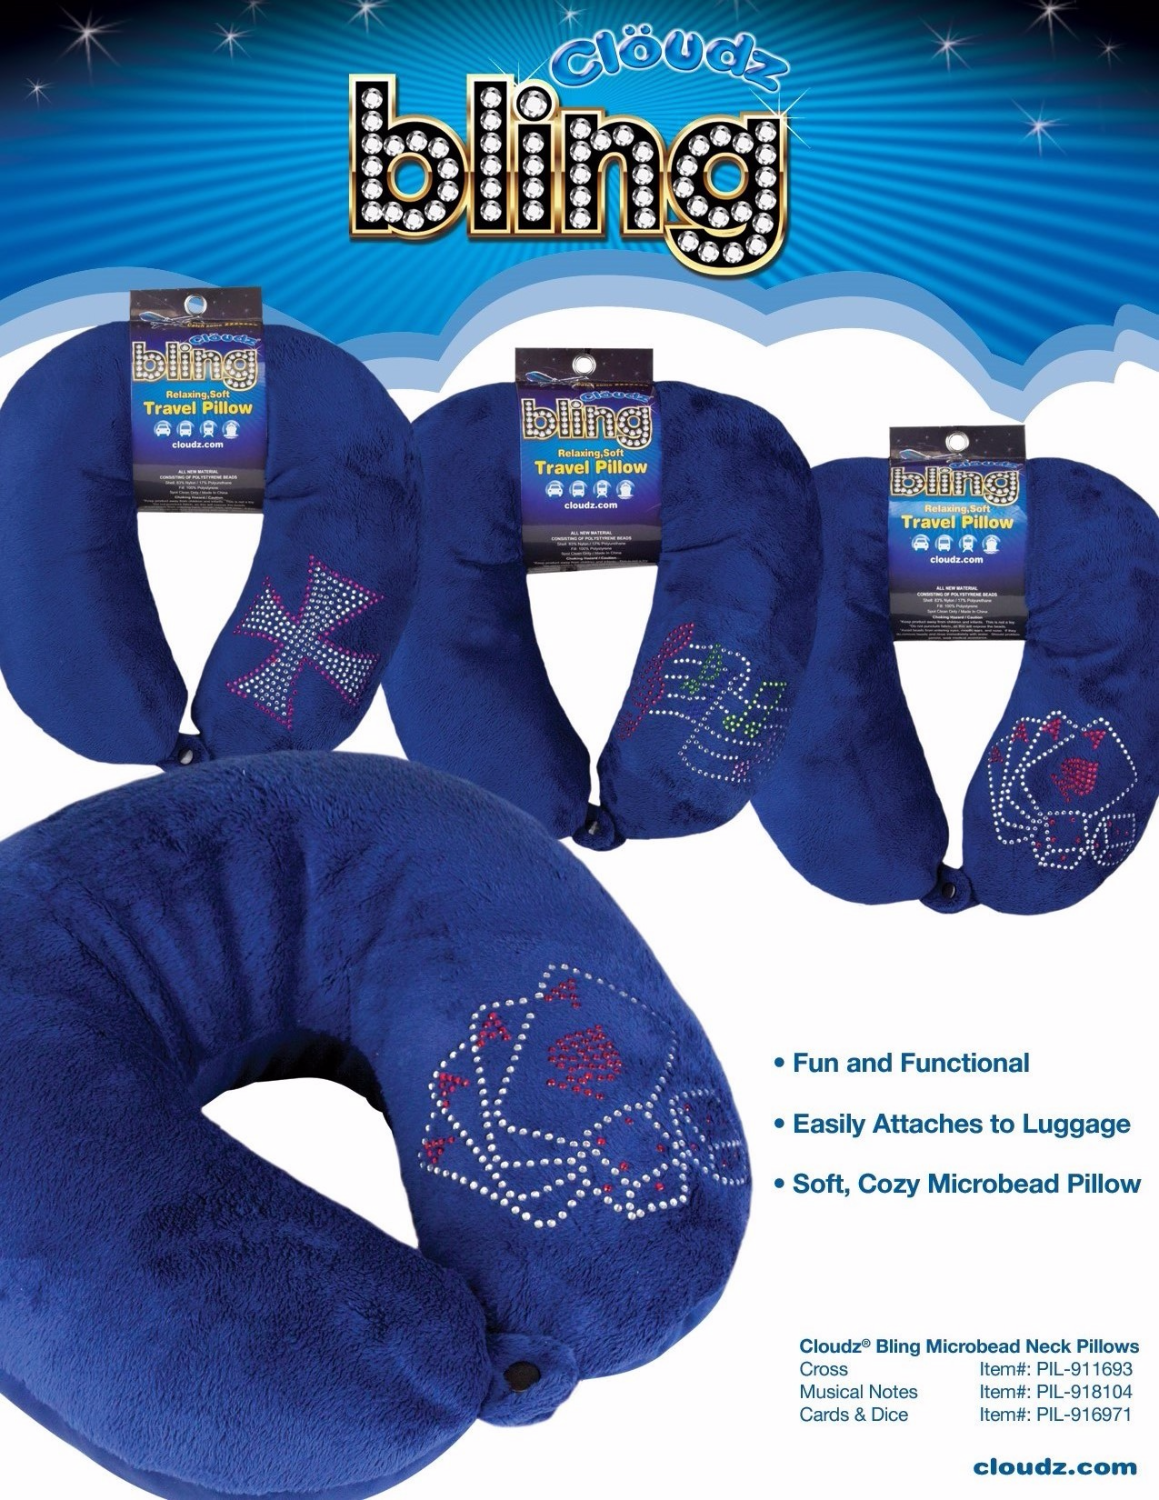 13 Cloudz Bling Microbead Neck Pillows